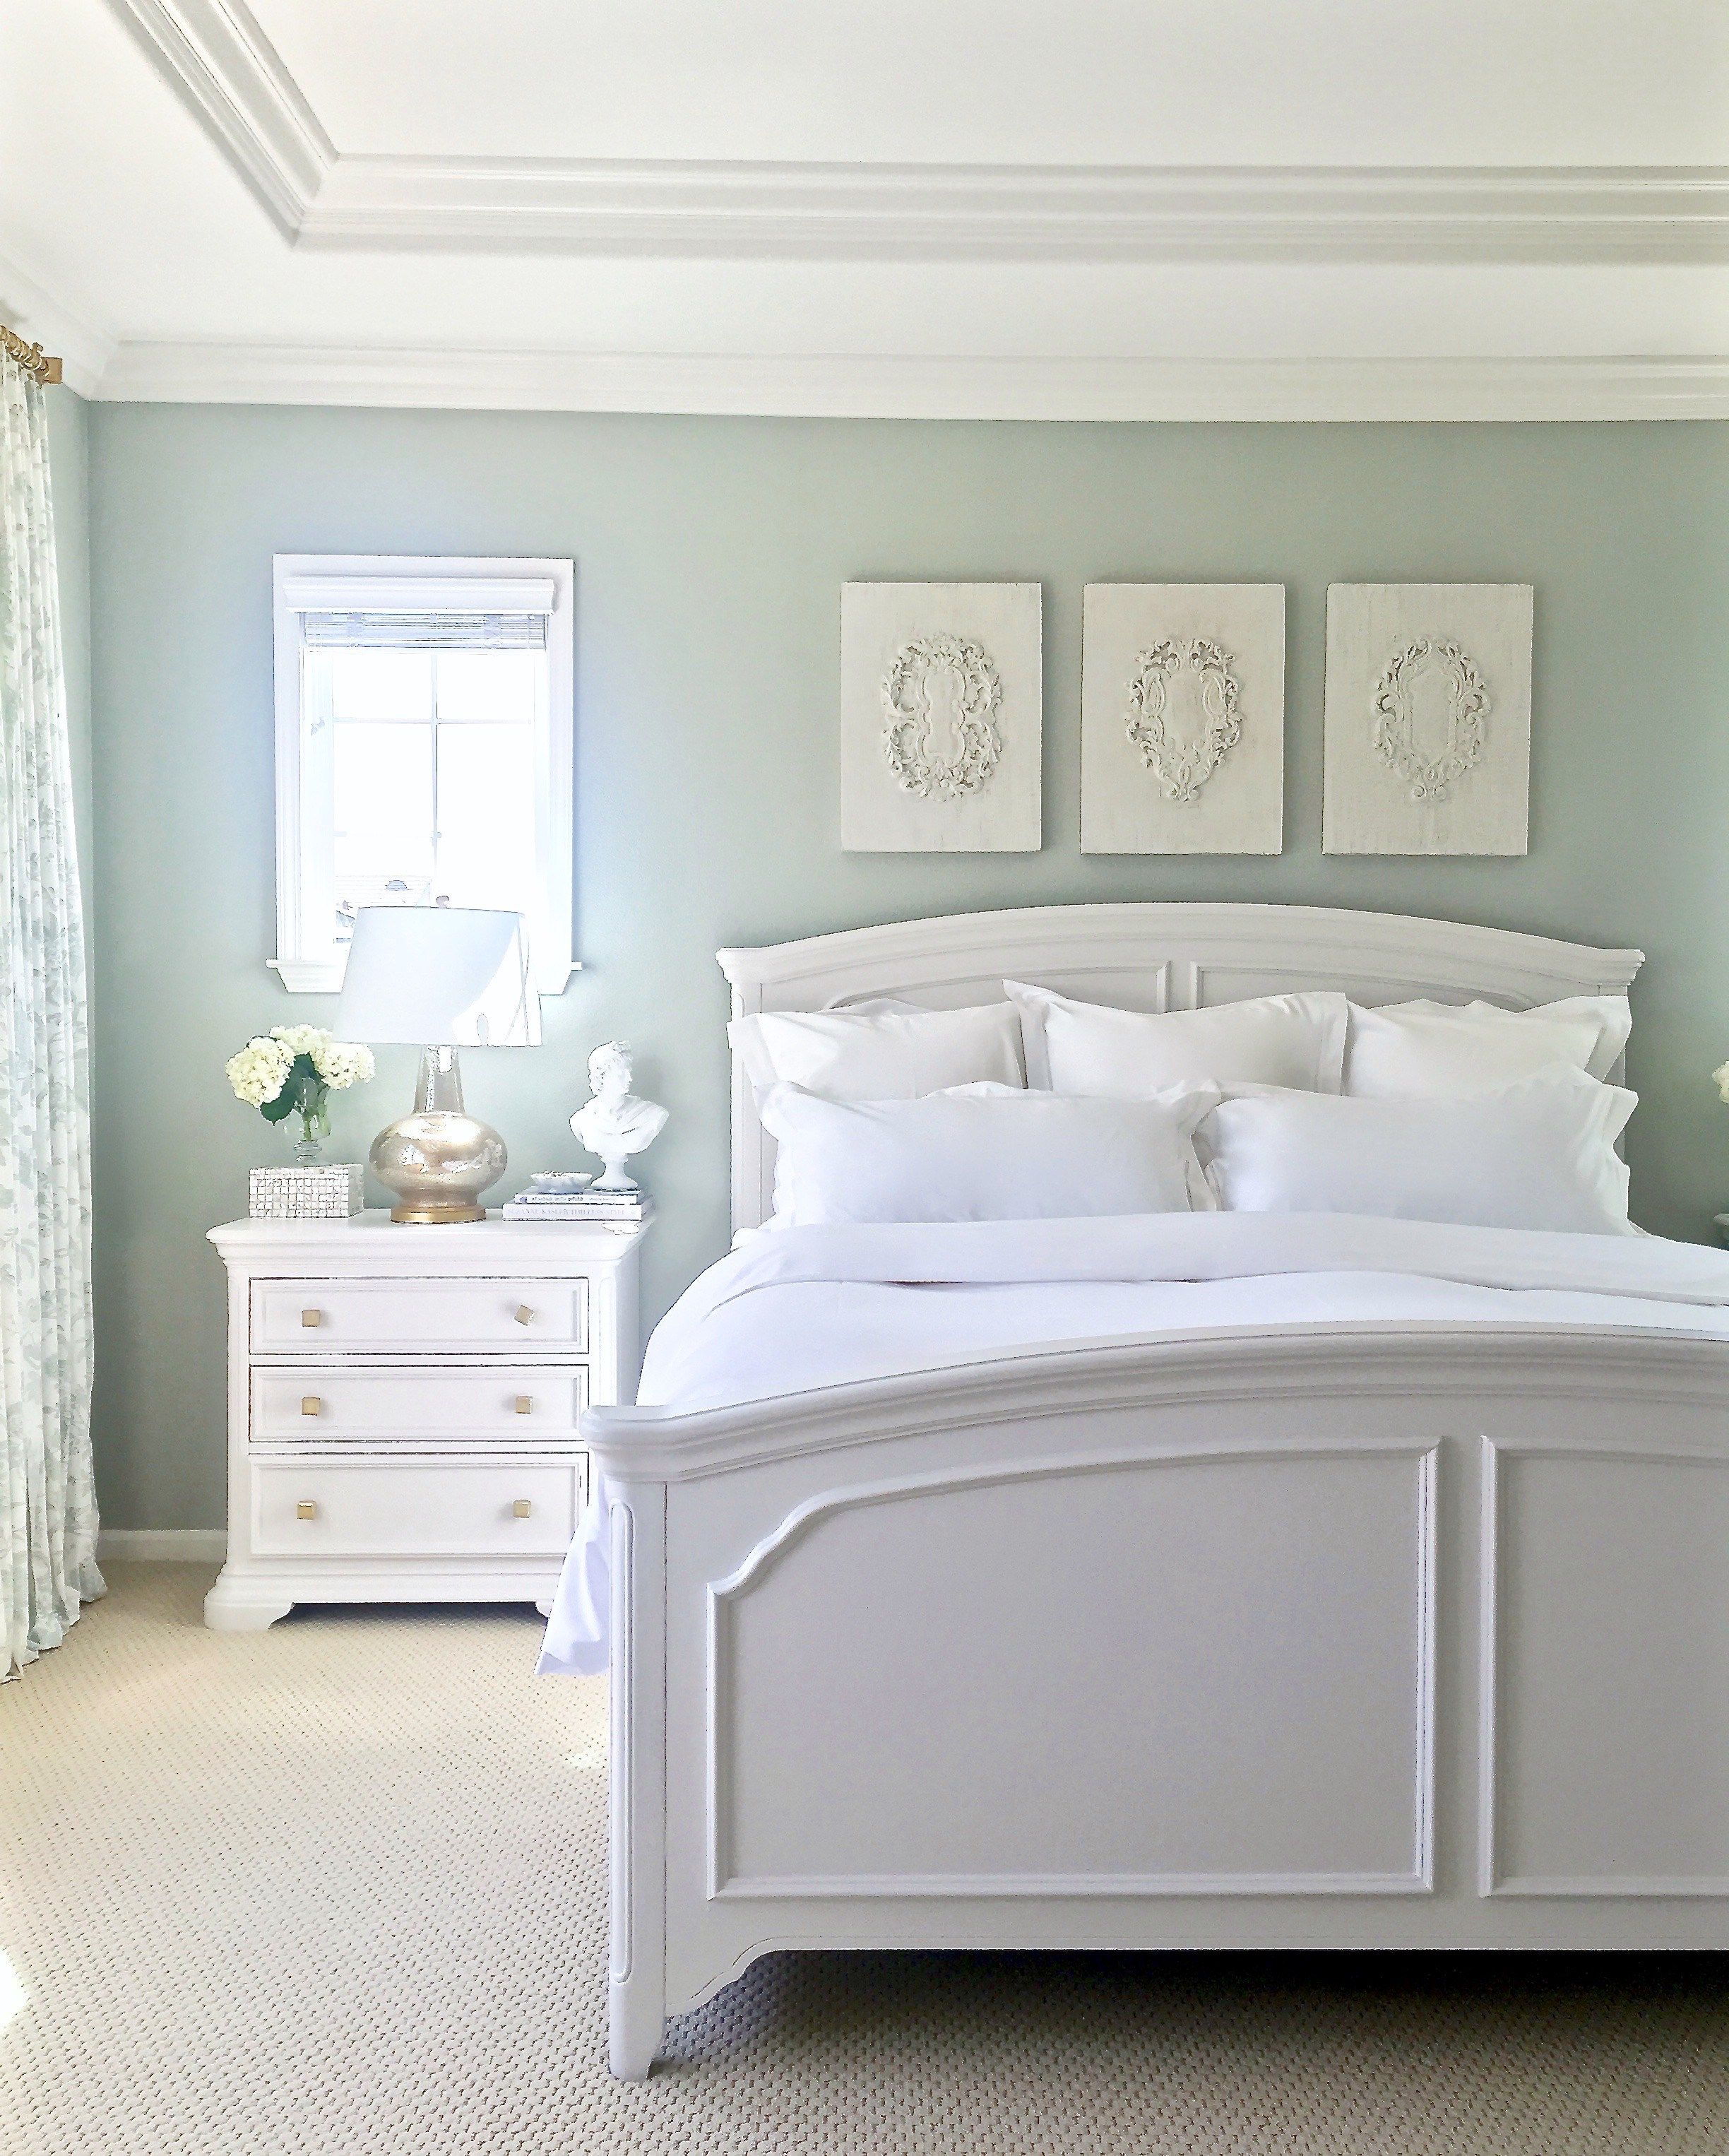 Bedroom Paint: My New Summer White Bedding From Boll & Branch